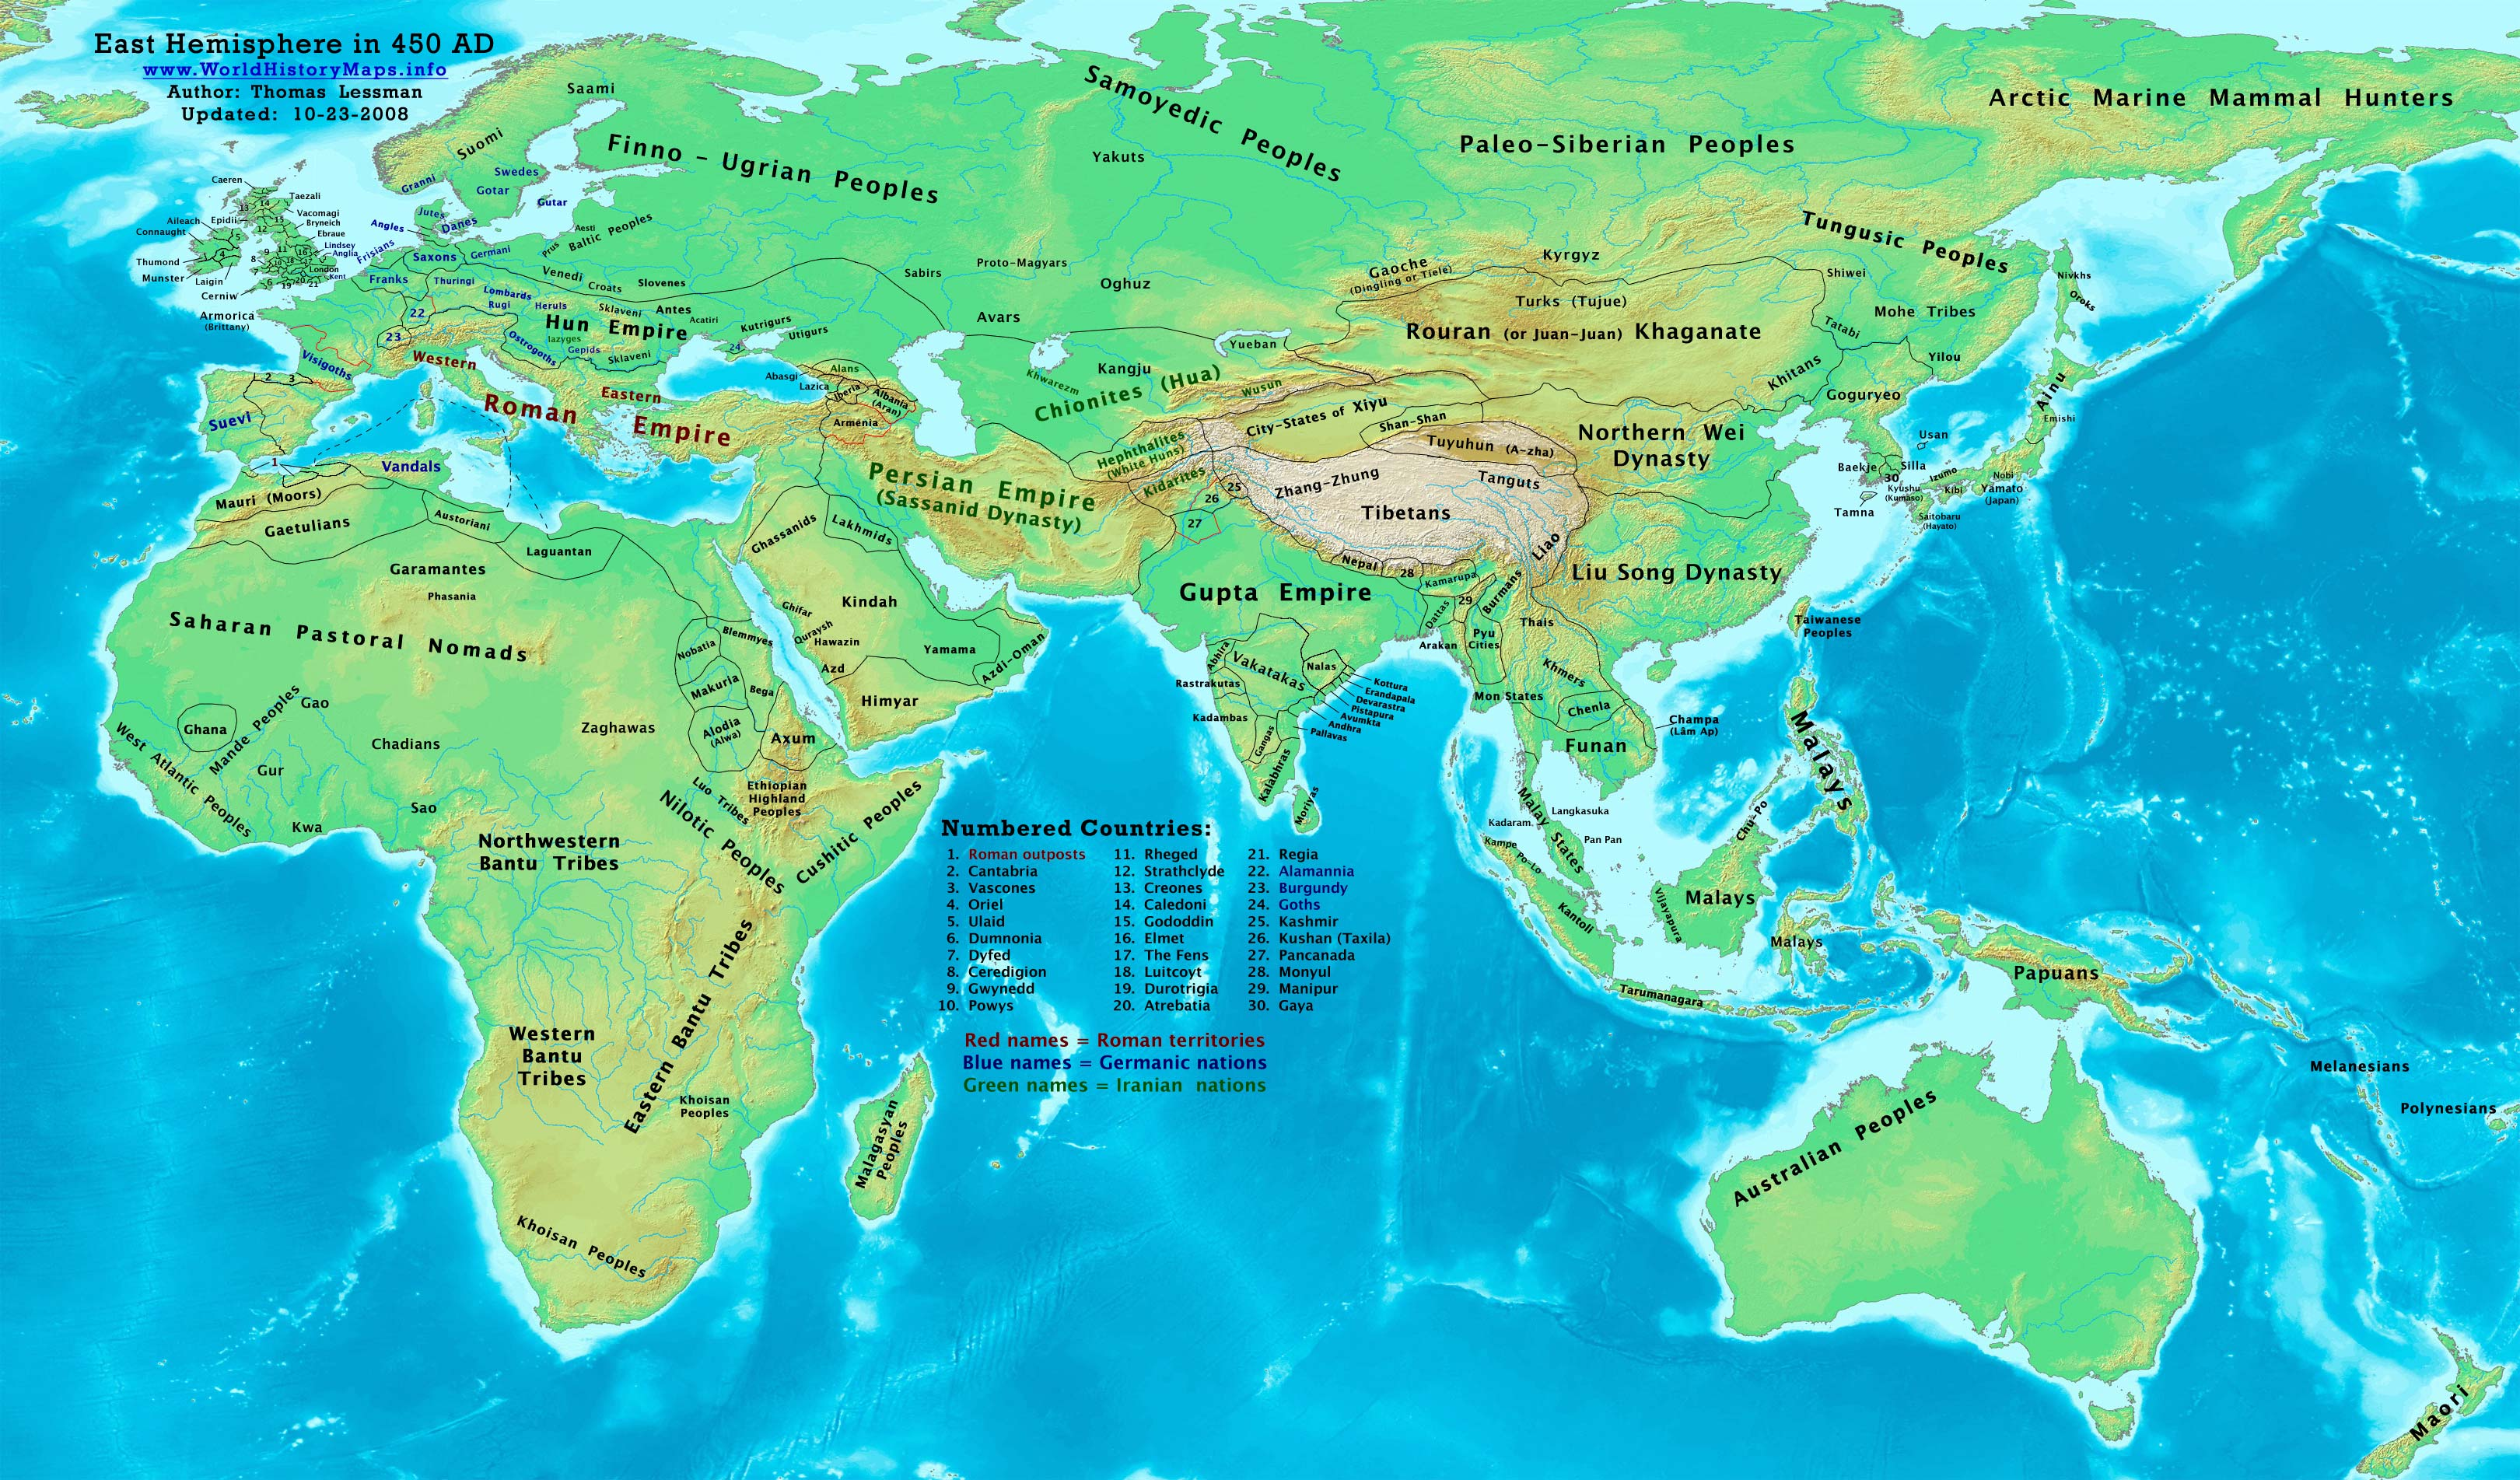 Map Of England 400 Ad.World History Maps By Thomas Lessman